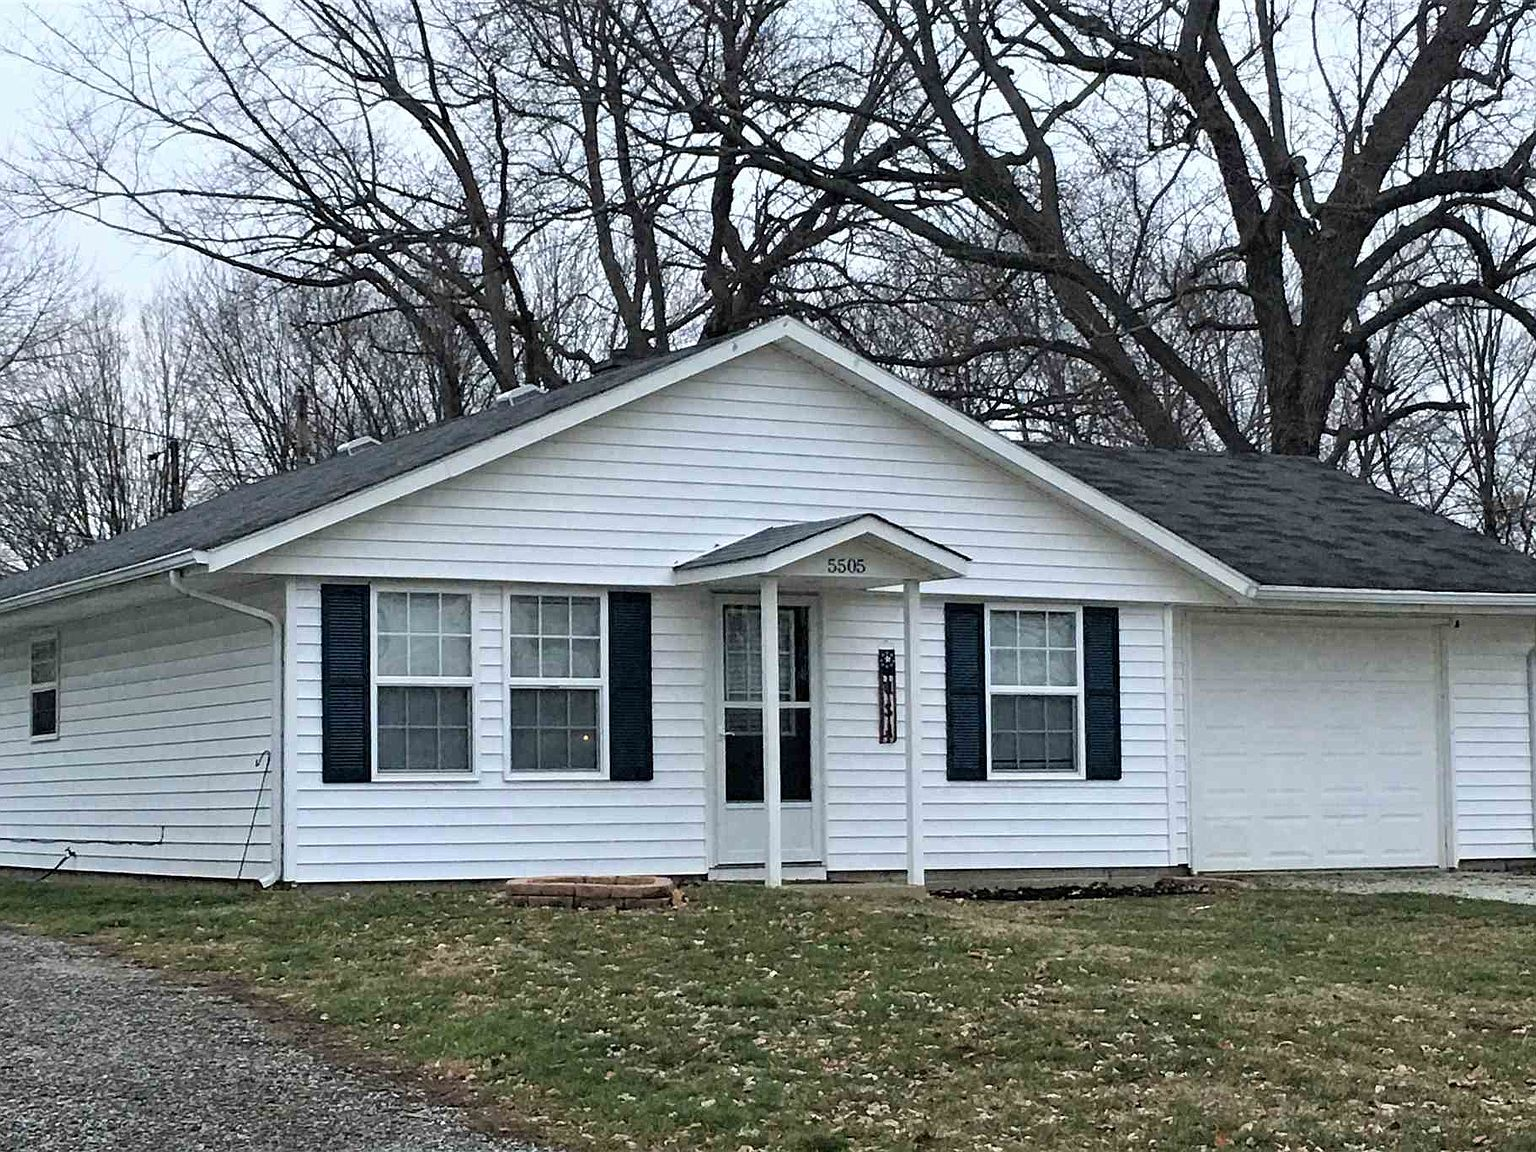 5505 council ring blvd kokomo in 46902 zillow zillow